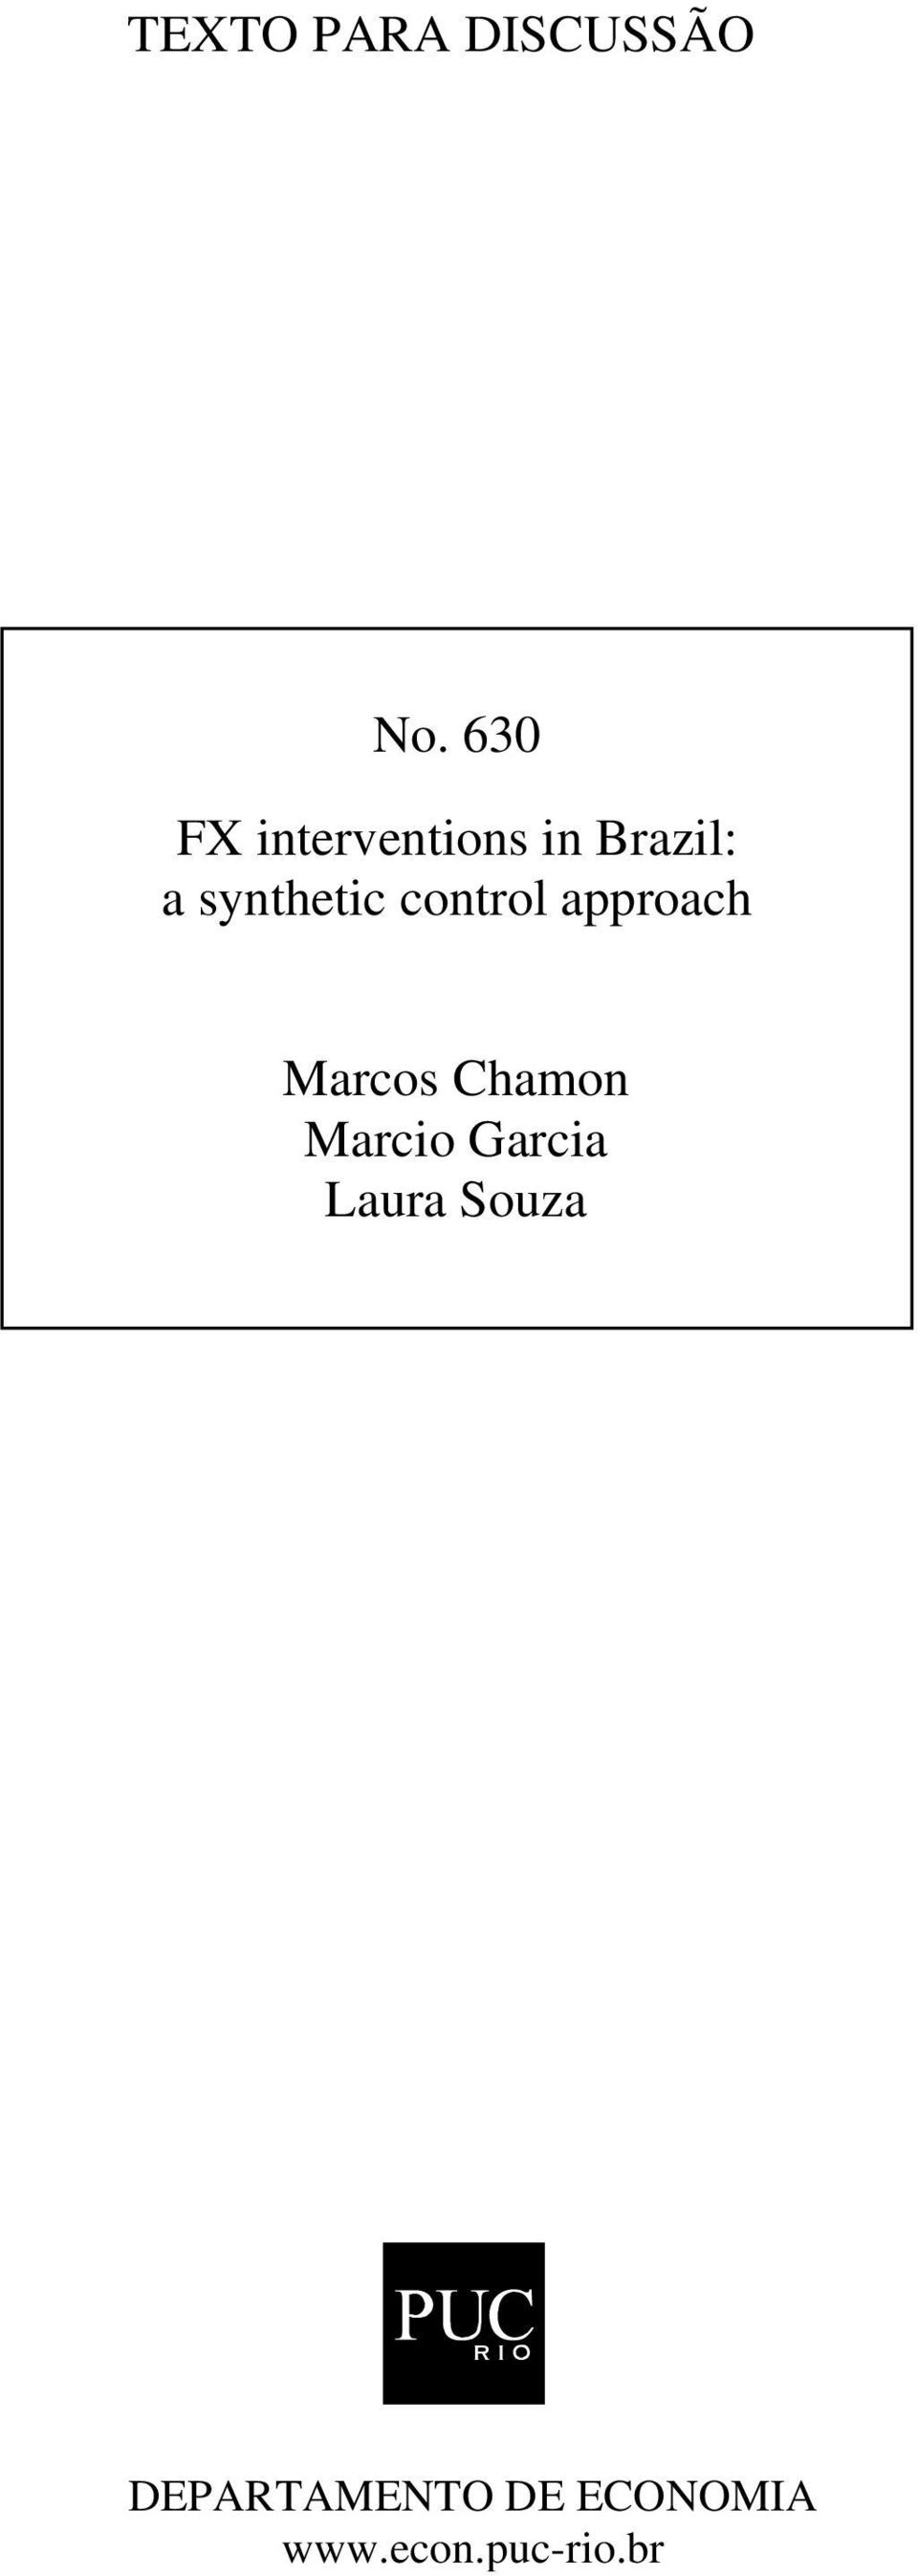 synthetic control approach Marcos Chamon